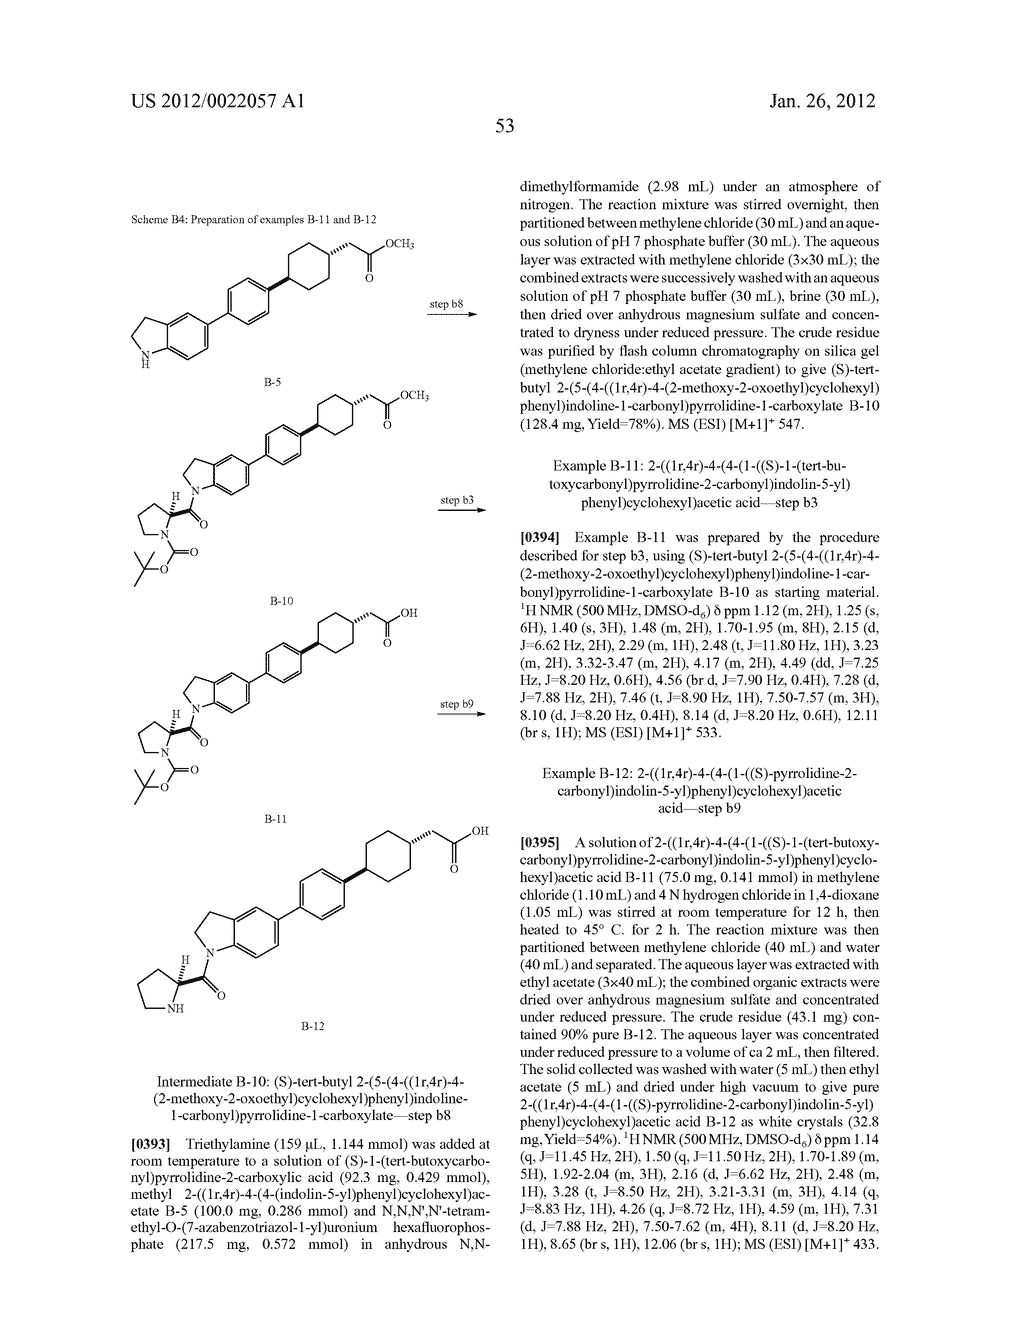 BICYCLIC COMPOUNDS AS INHIBITORS OF DIACYGLYCEROL ACYLTRANSFERASE - diagram, schematic, and image 54